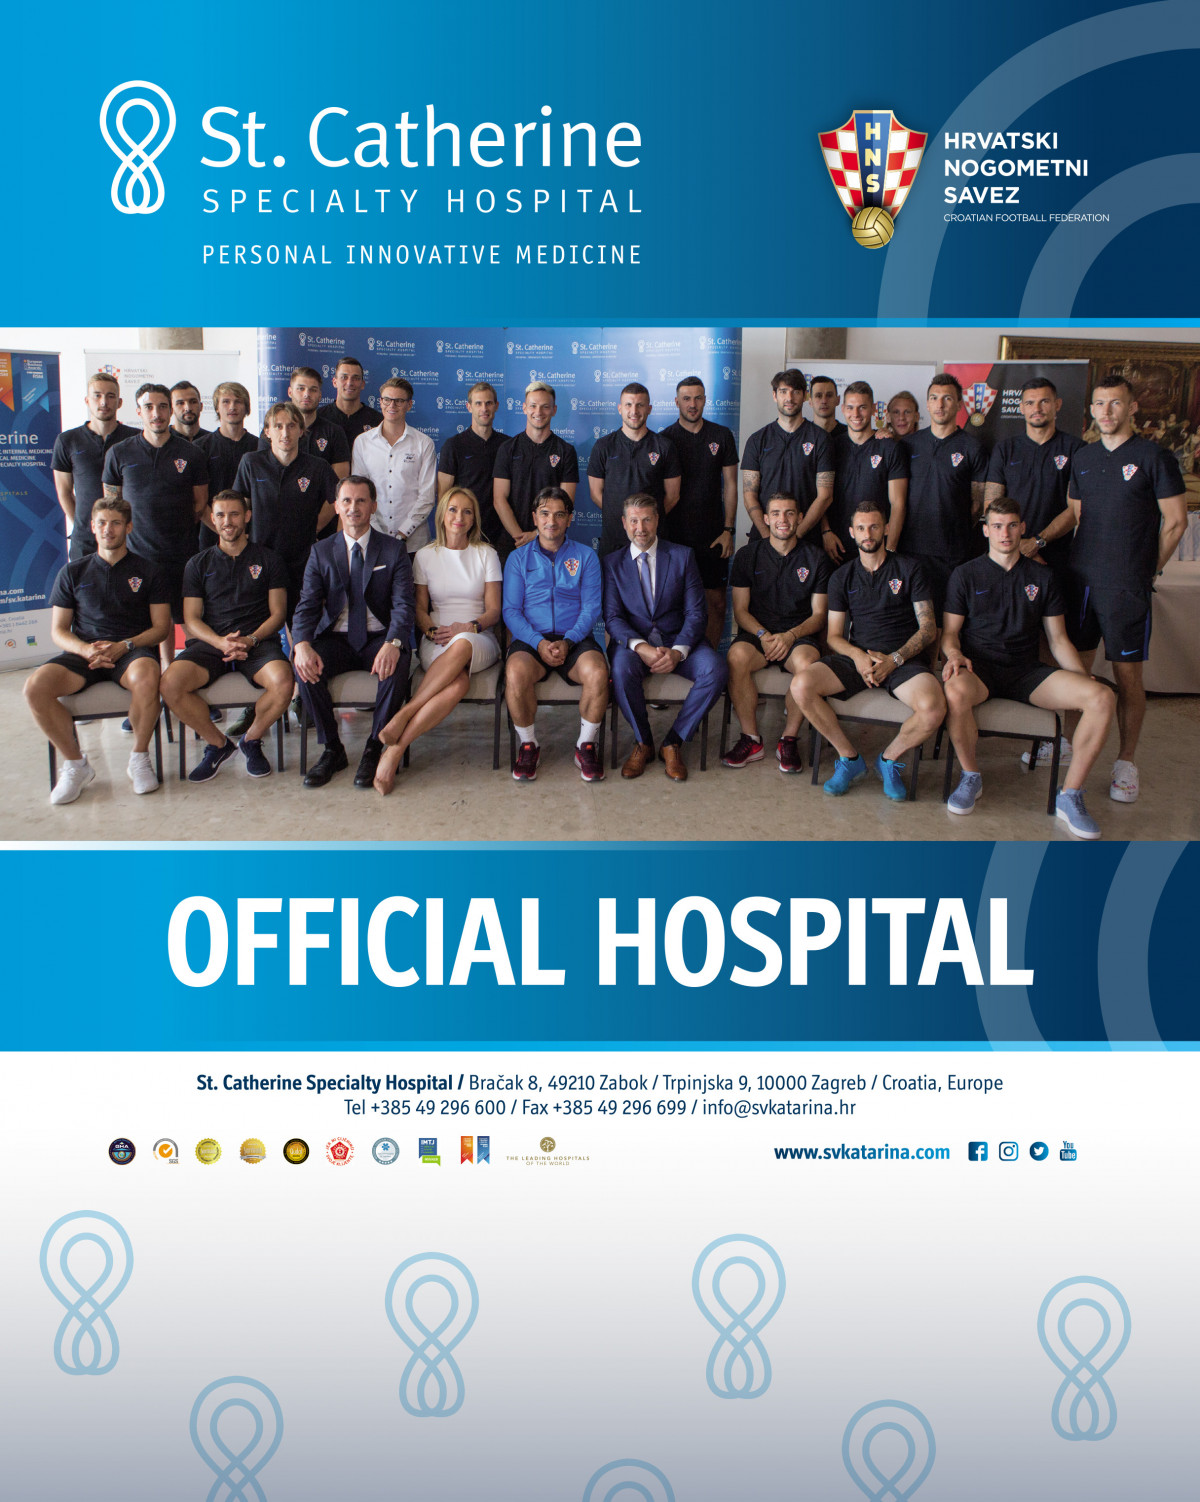 St. Catherine Hospital Becomes an Official Hospital of the Croatian Football Federation